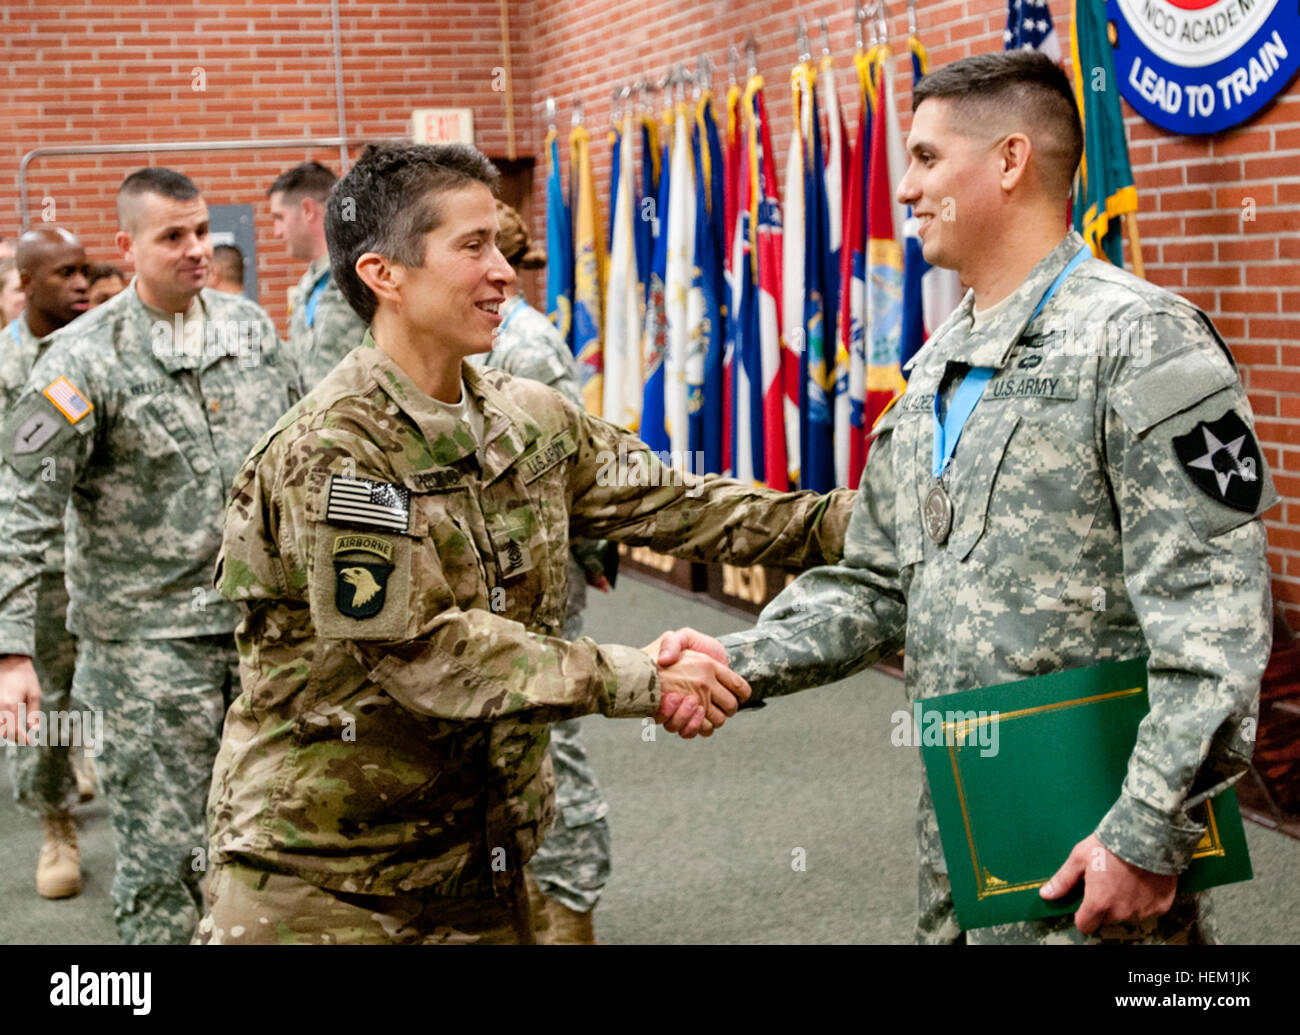 Army color casing ceremony script - Command Sgt Major Dawn Rippelmeyer 42nd Military Police Brigade Command Sergeant Major Congratulates